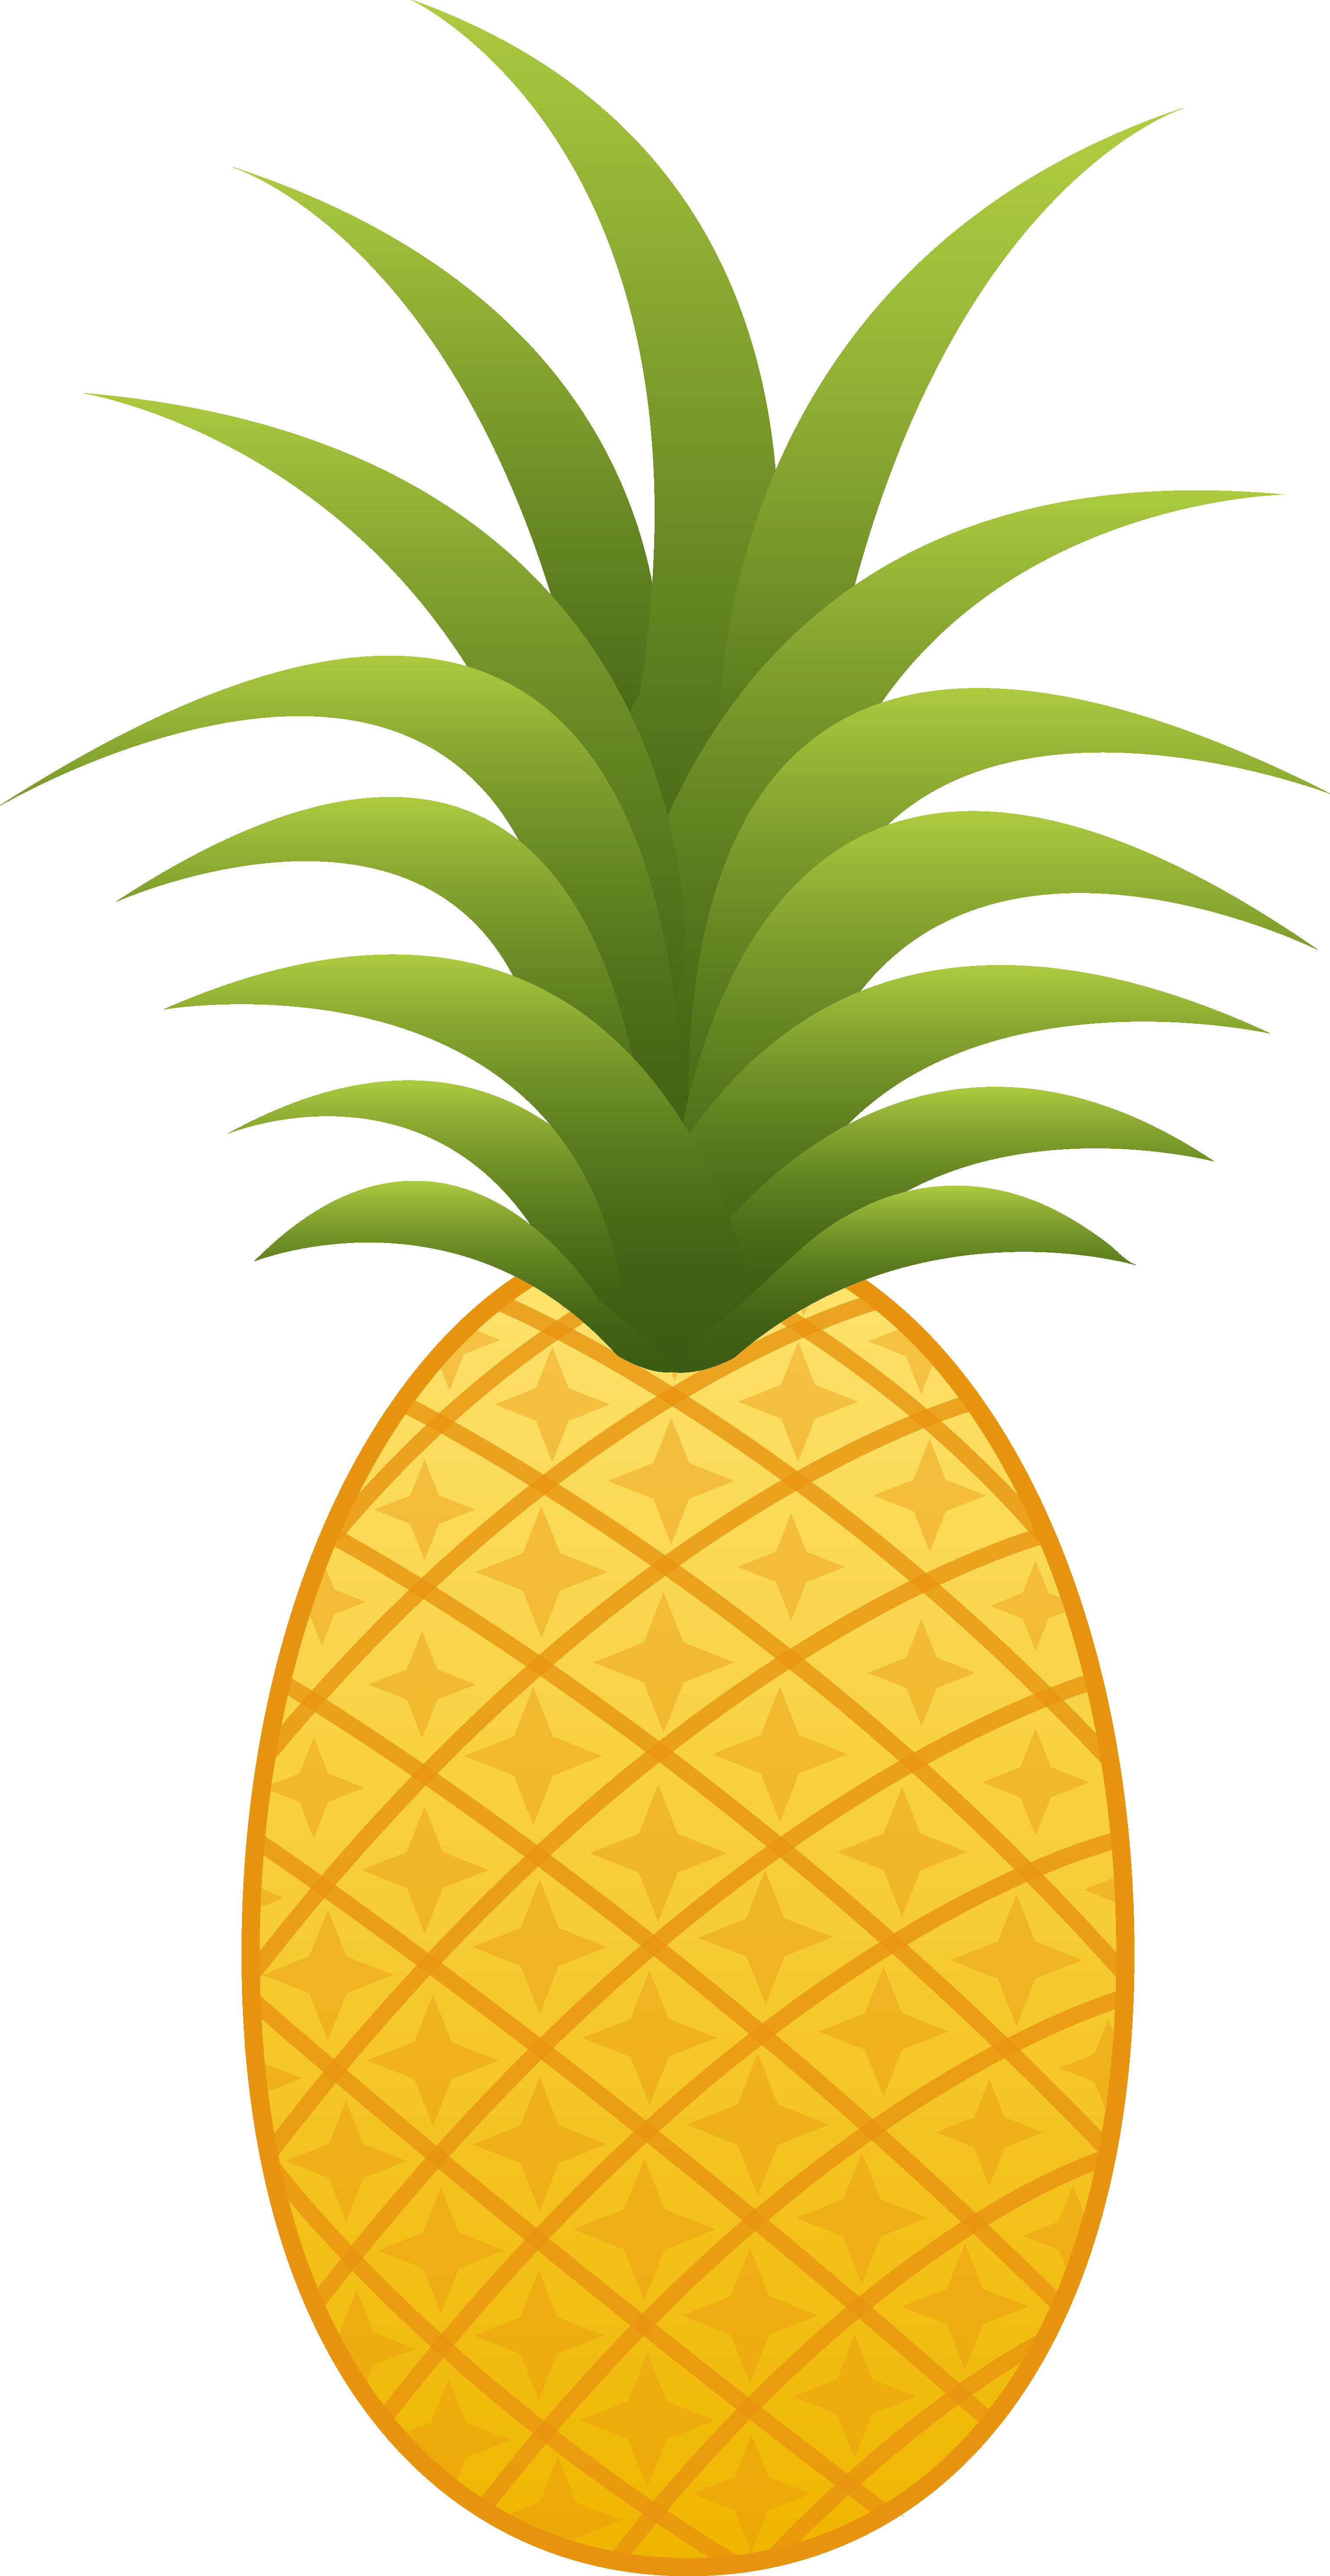 Pineapple PNG - 16589